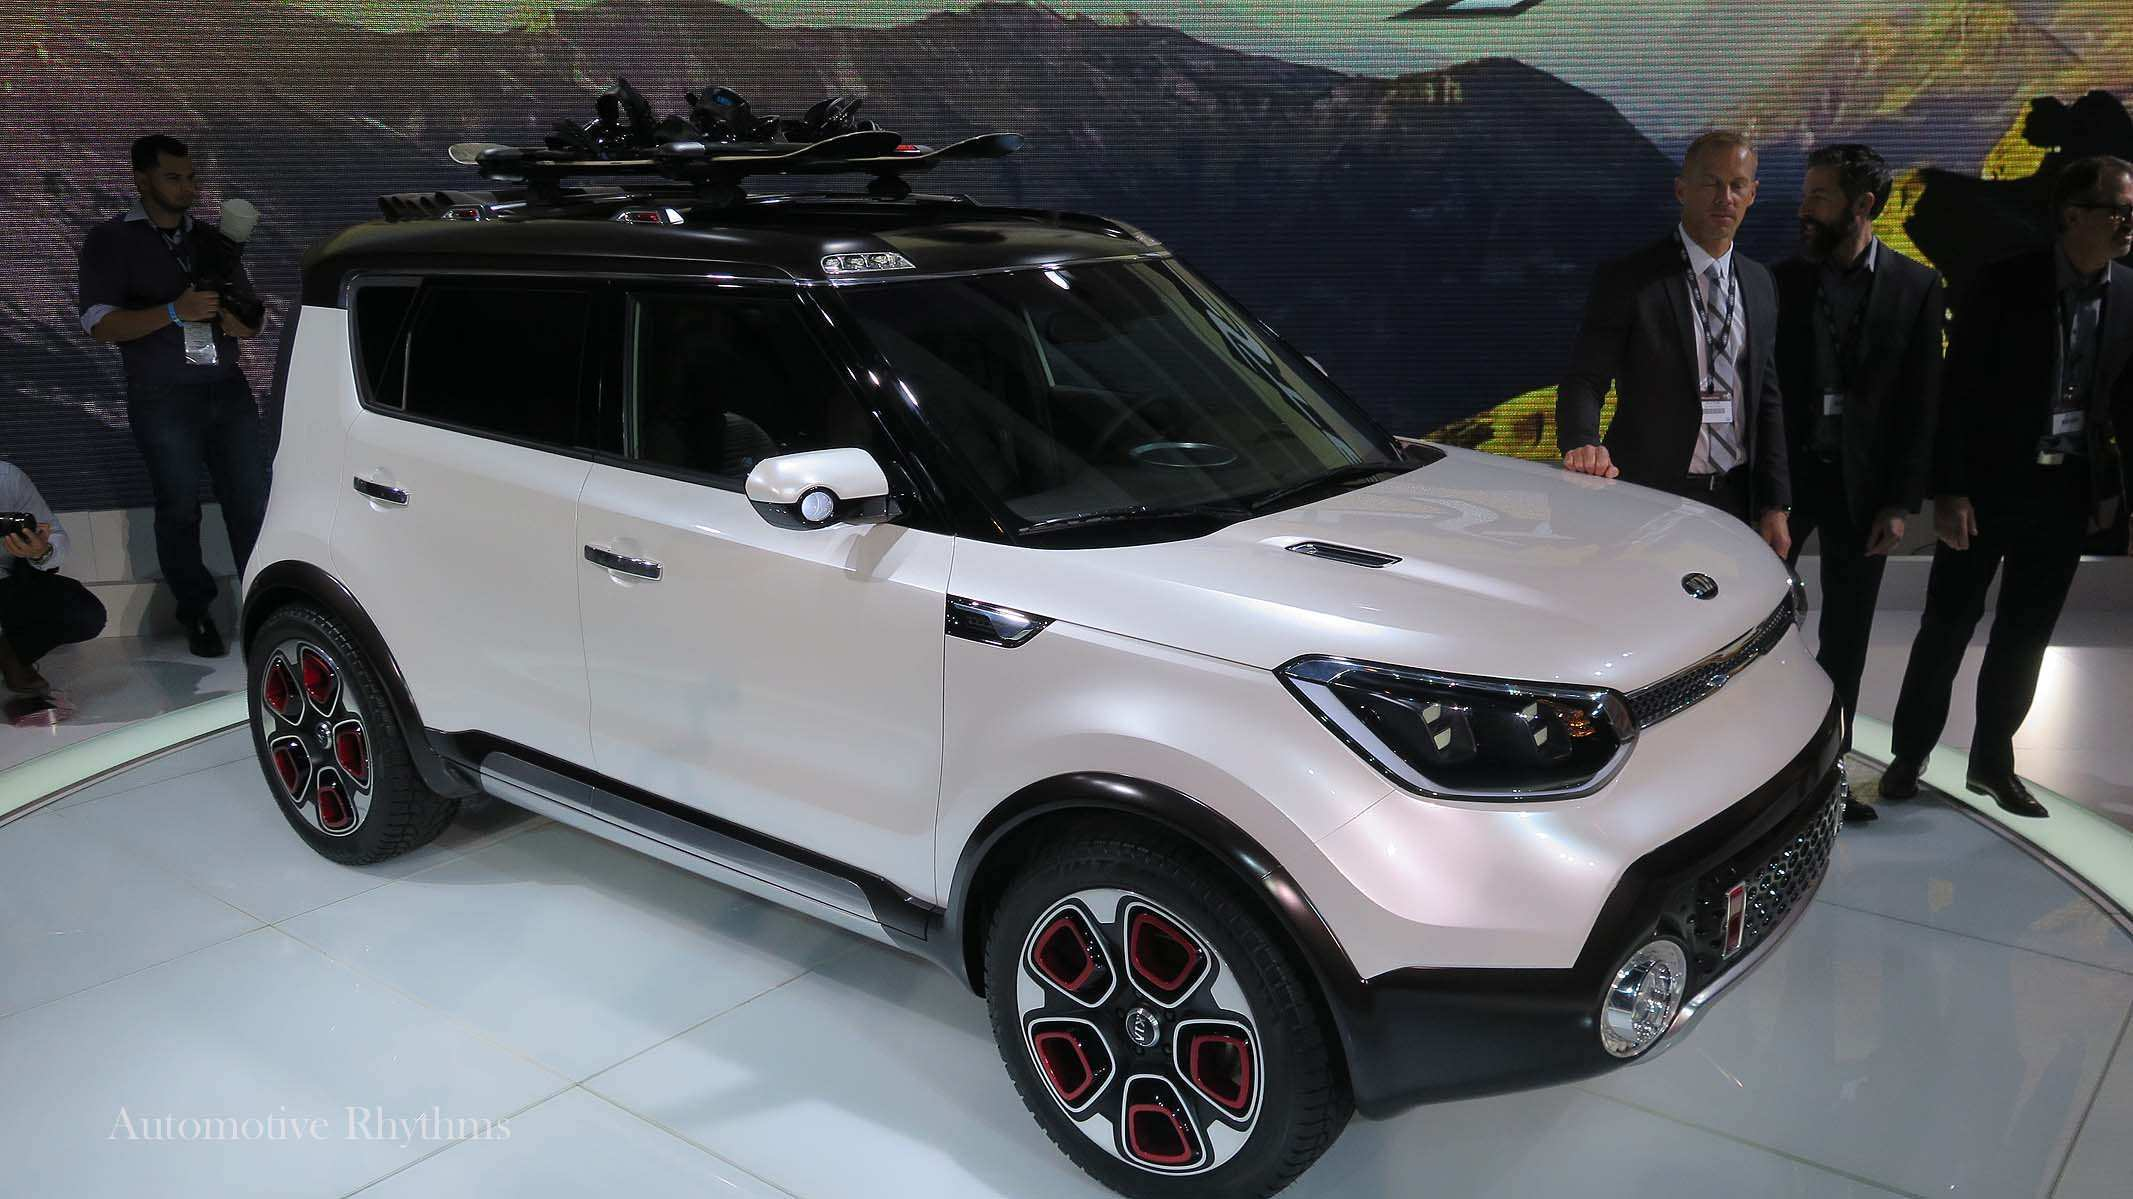 17 New Kia Trailster 2020 Style for Kia Trailster 2020